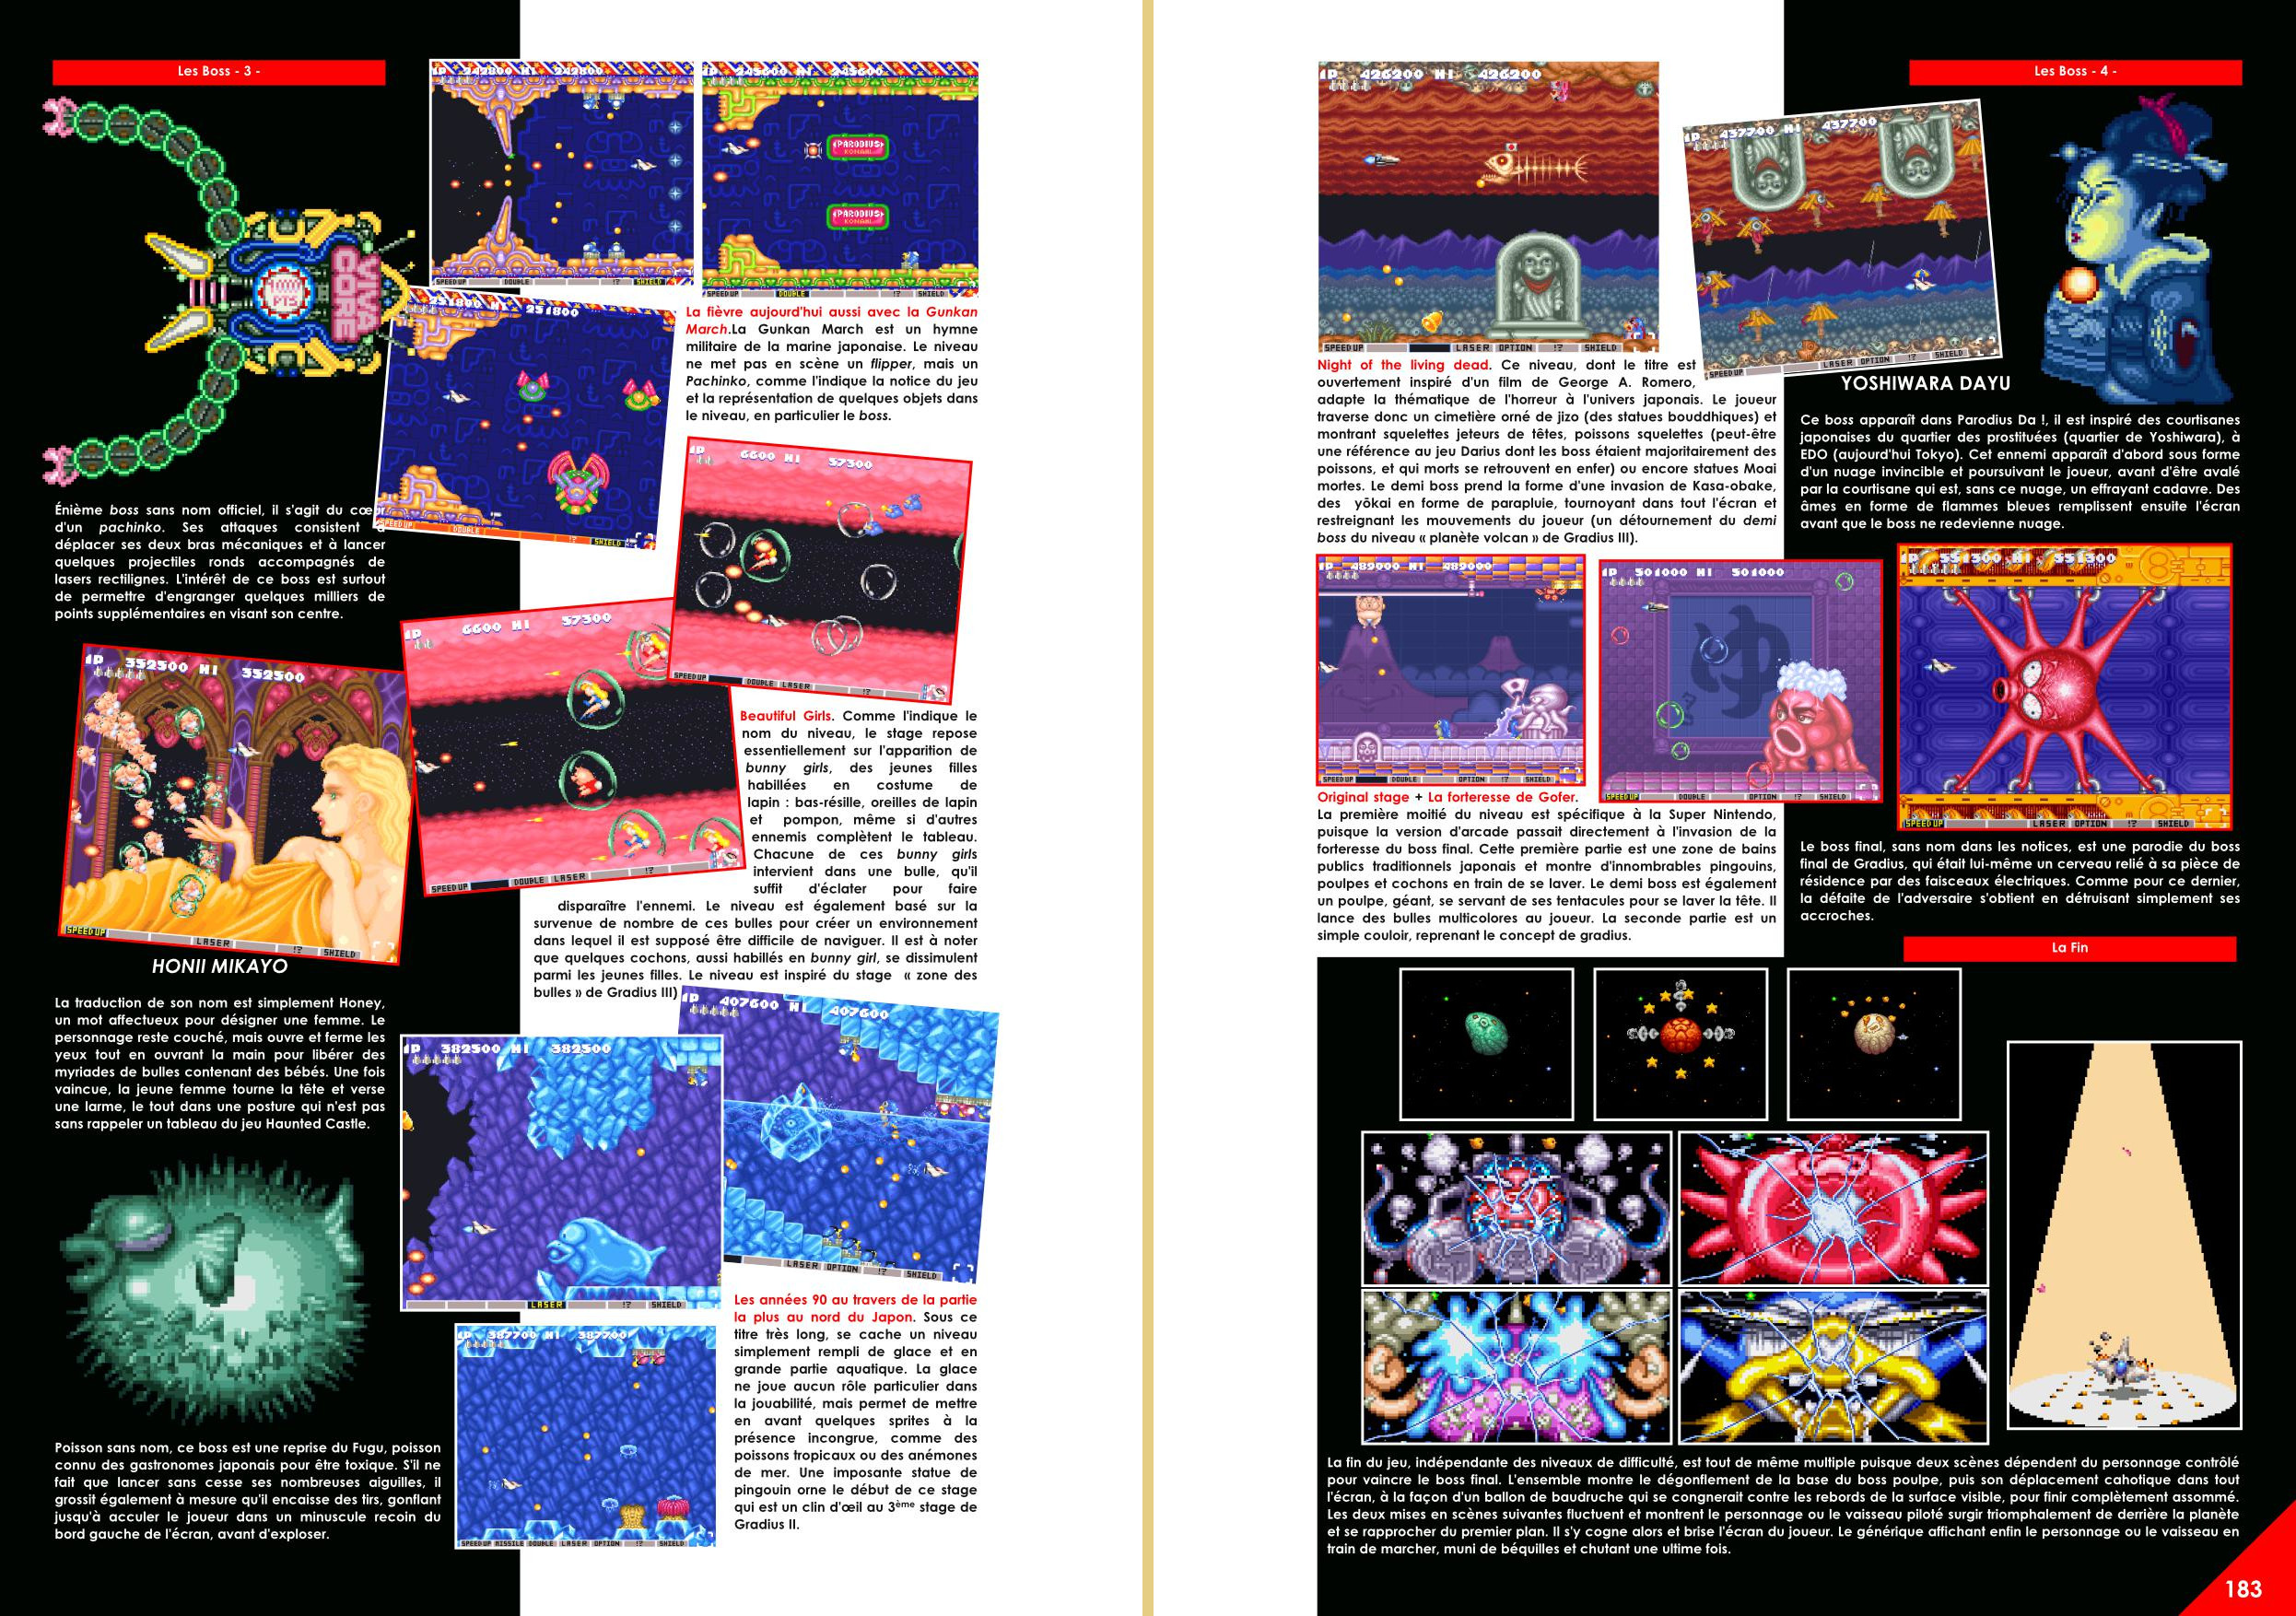 Livre sur les Shoot'em Up de la Super Nintendo dans la collection d'encyclopédies Shmup de Côté Gamers